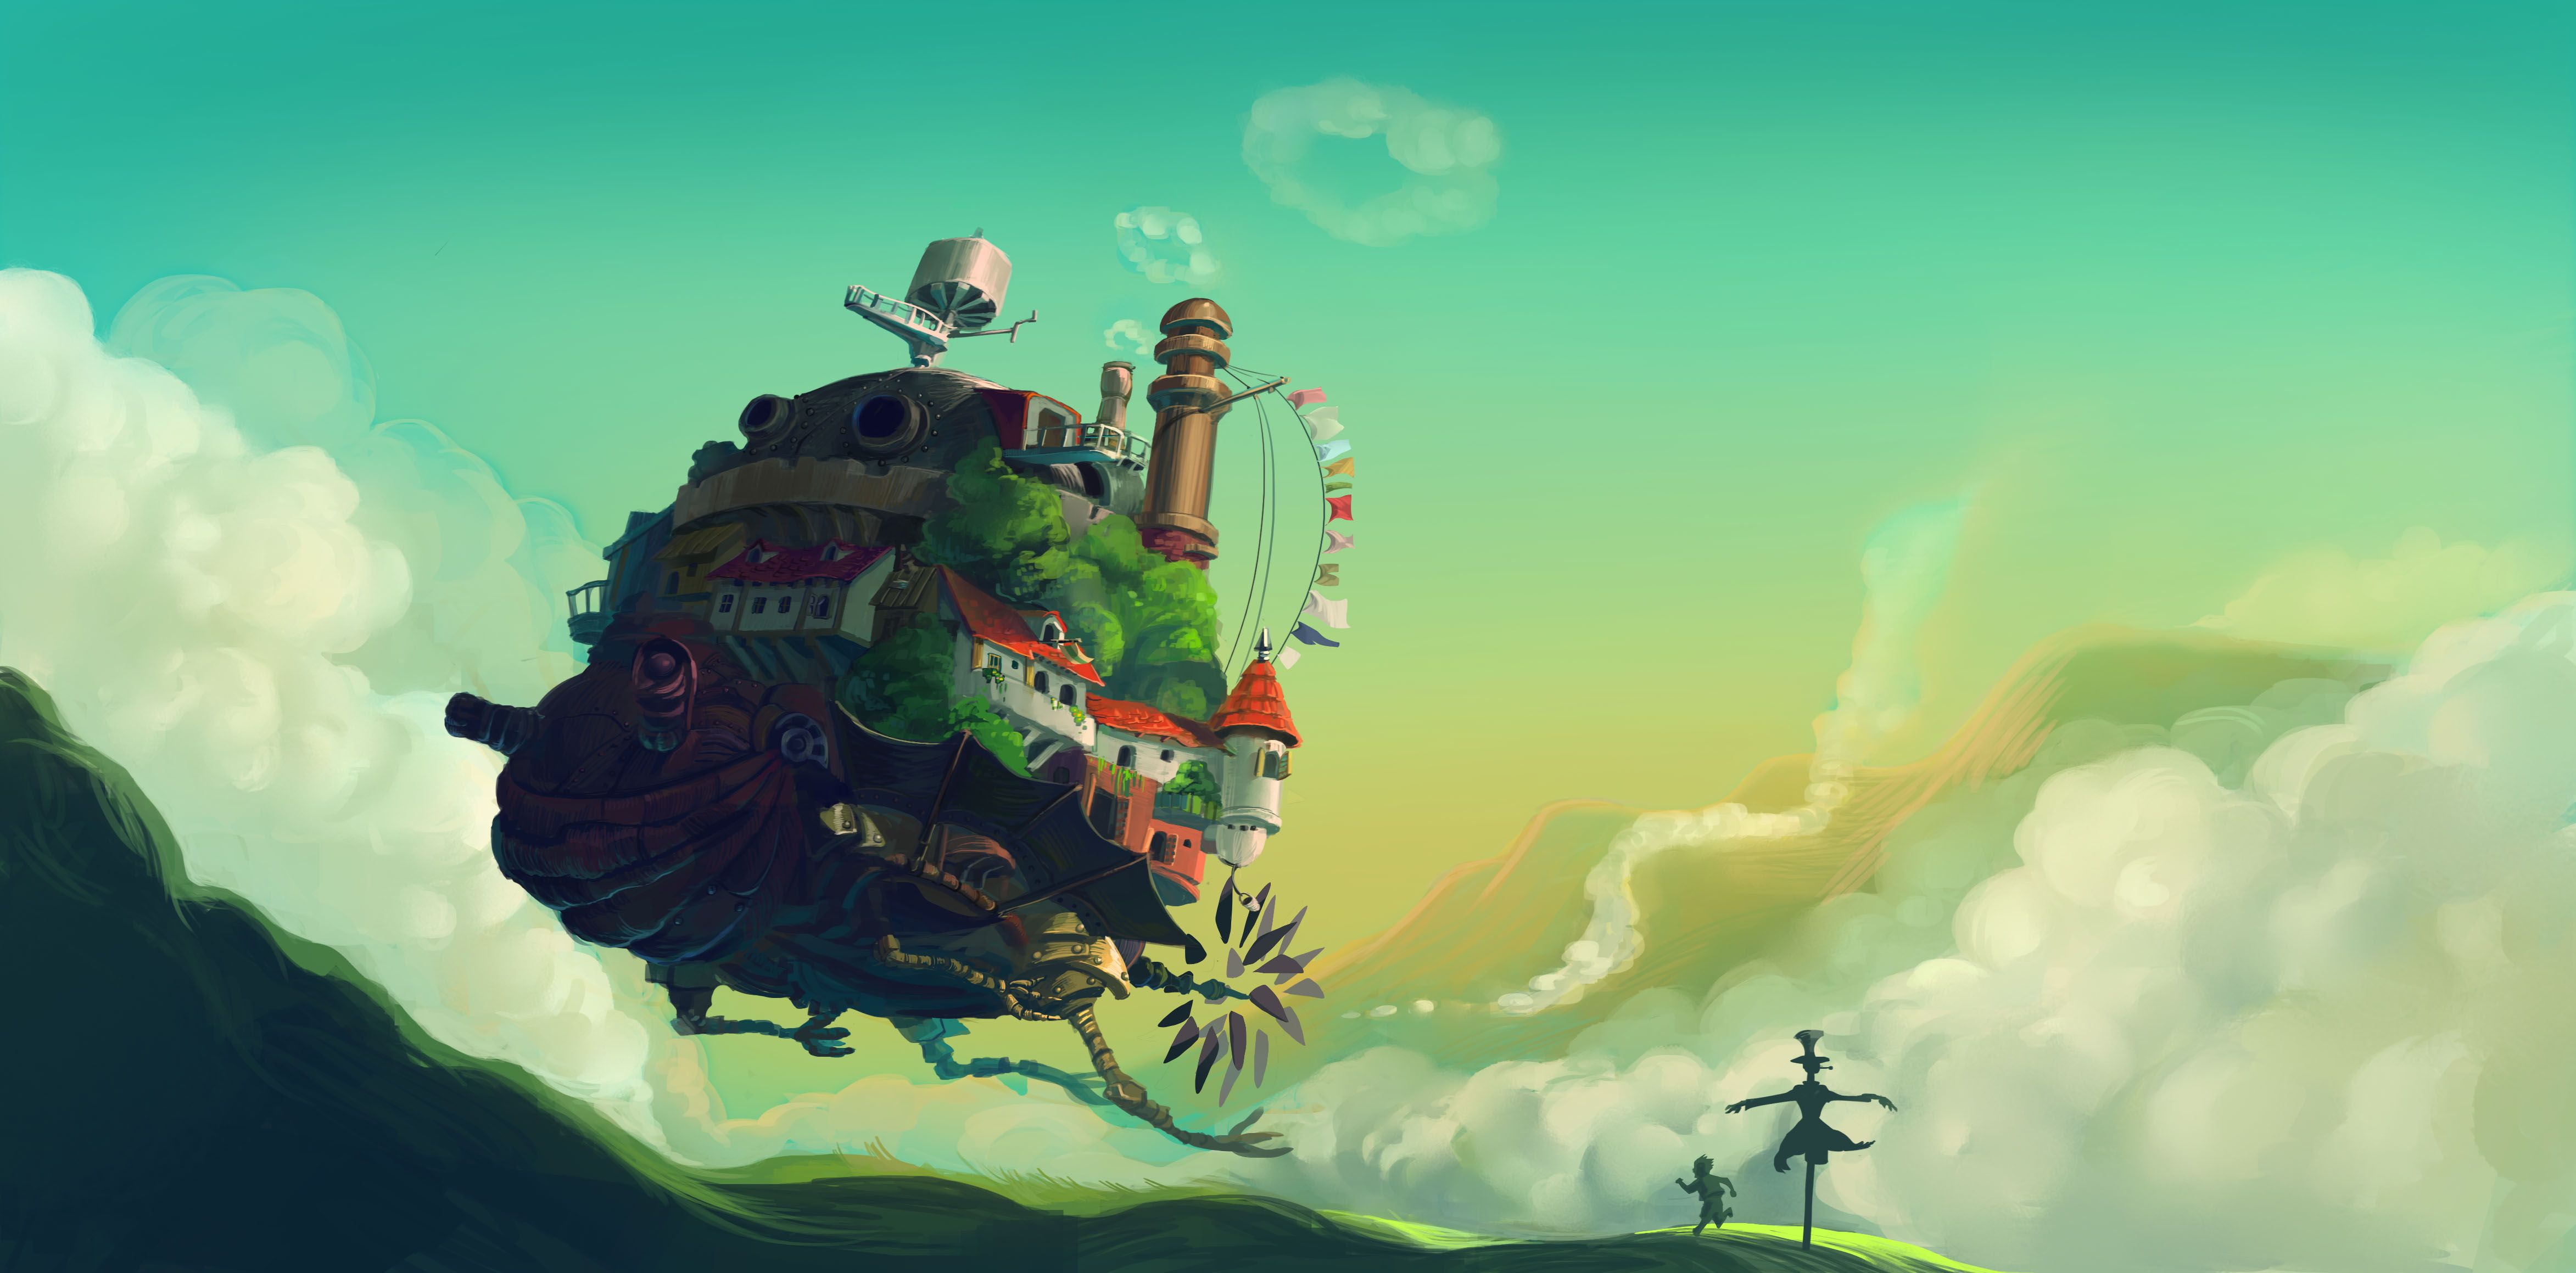 free download howl moving castle fan art wang illustration wallpaper pageresource com